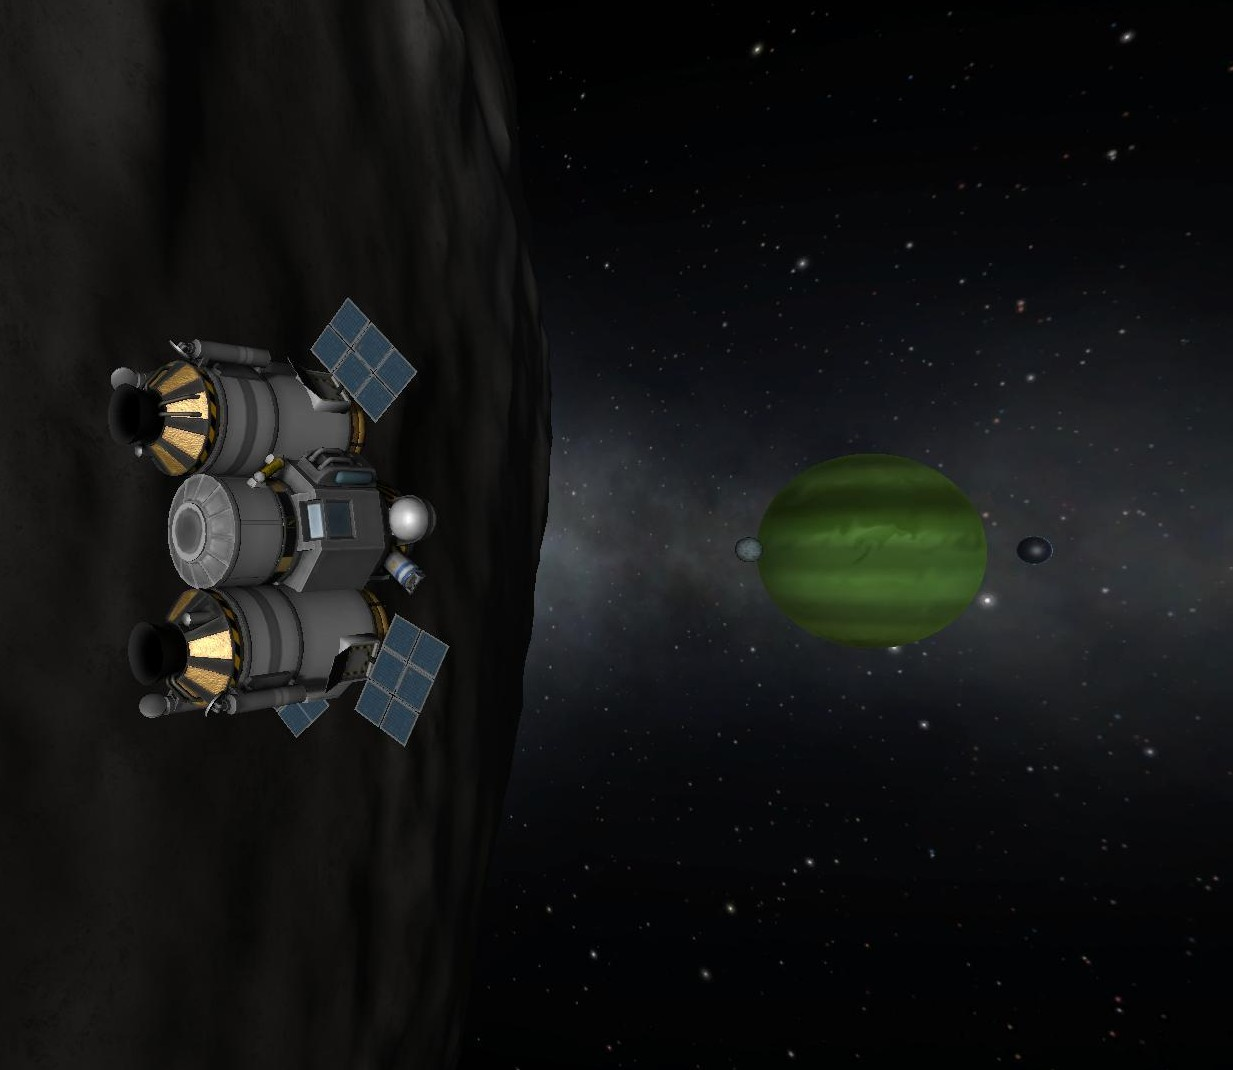 Tylo with Jool, Vall, and Laythe